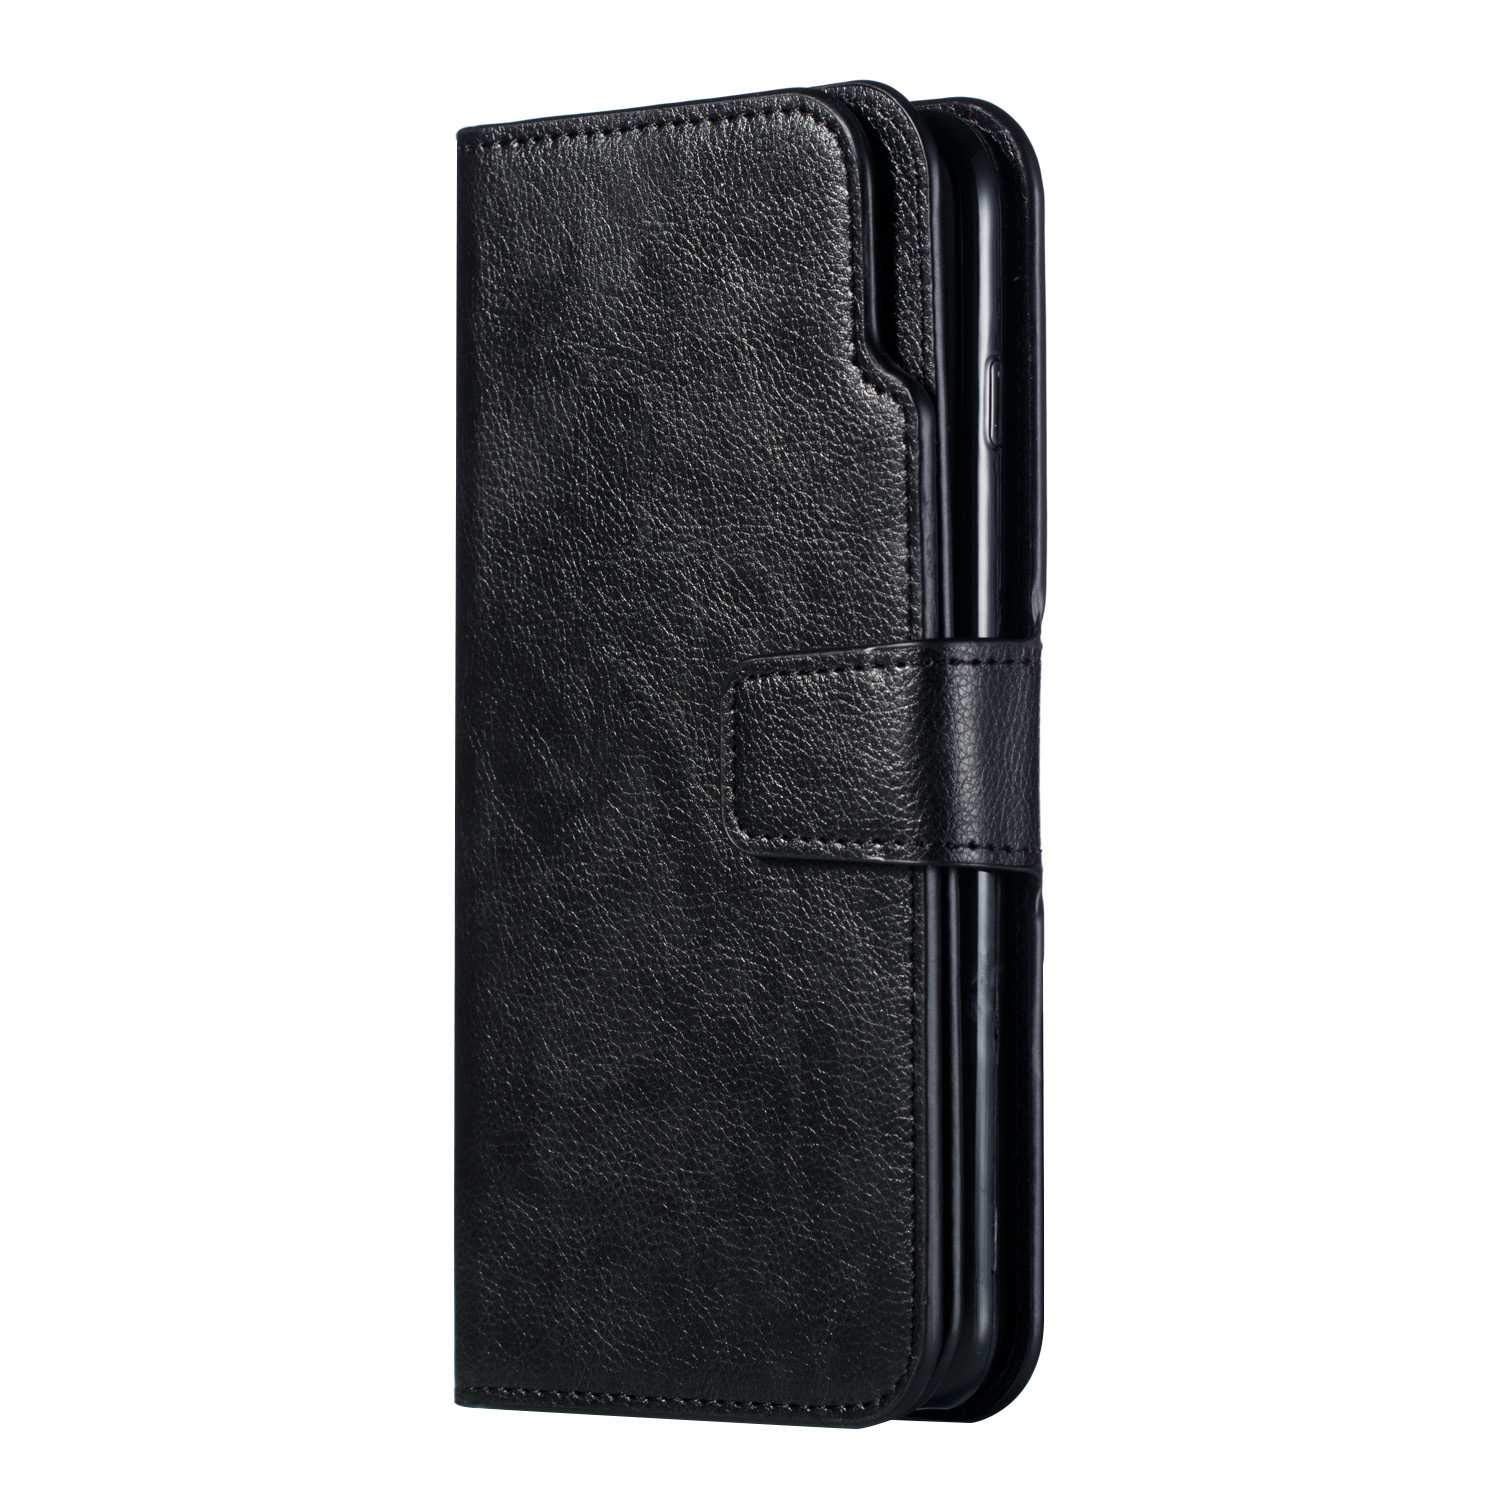 Fermeture magn/étique Fonction Stand Noir Portefeuille Etui 9 emplacements pour Apple Cartes et Monnaie DENDICO Coque iPhone 6 Plus//iPhone 6s Plus Etui en Cuir Housse